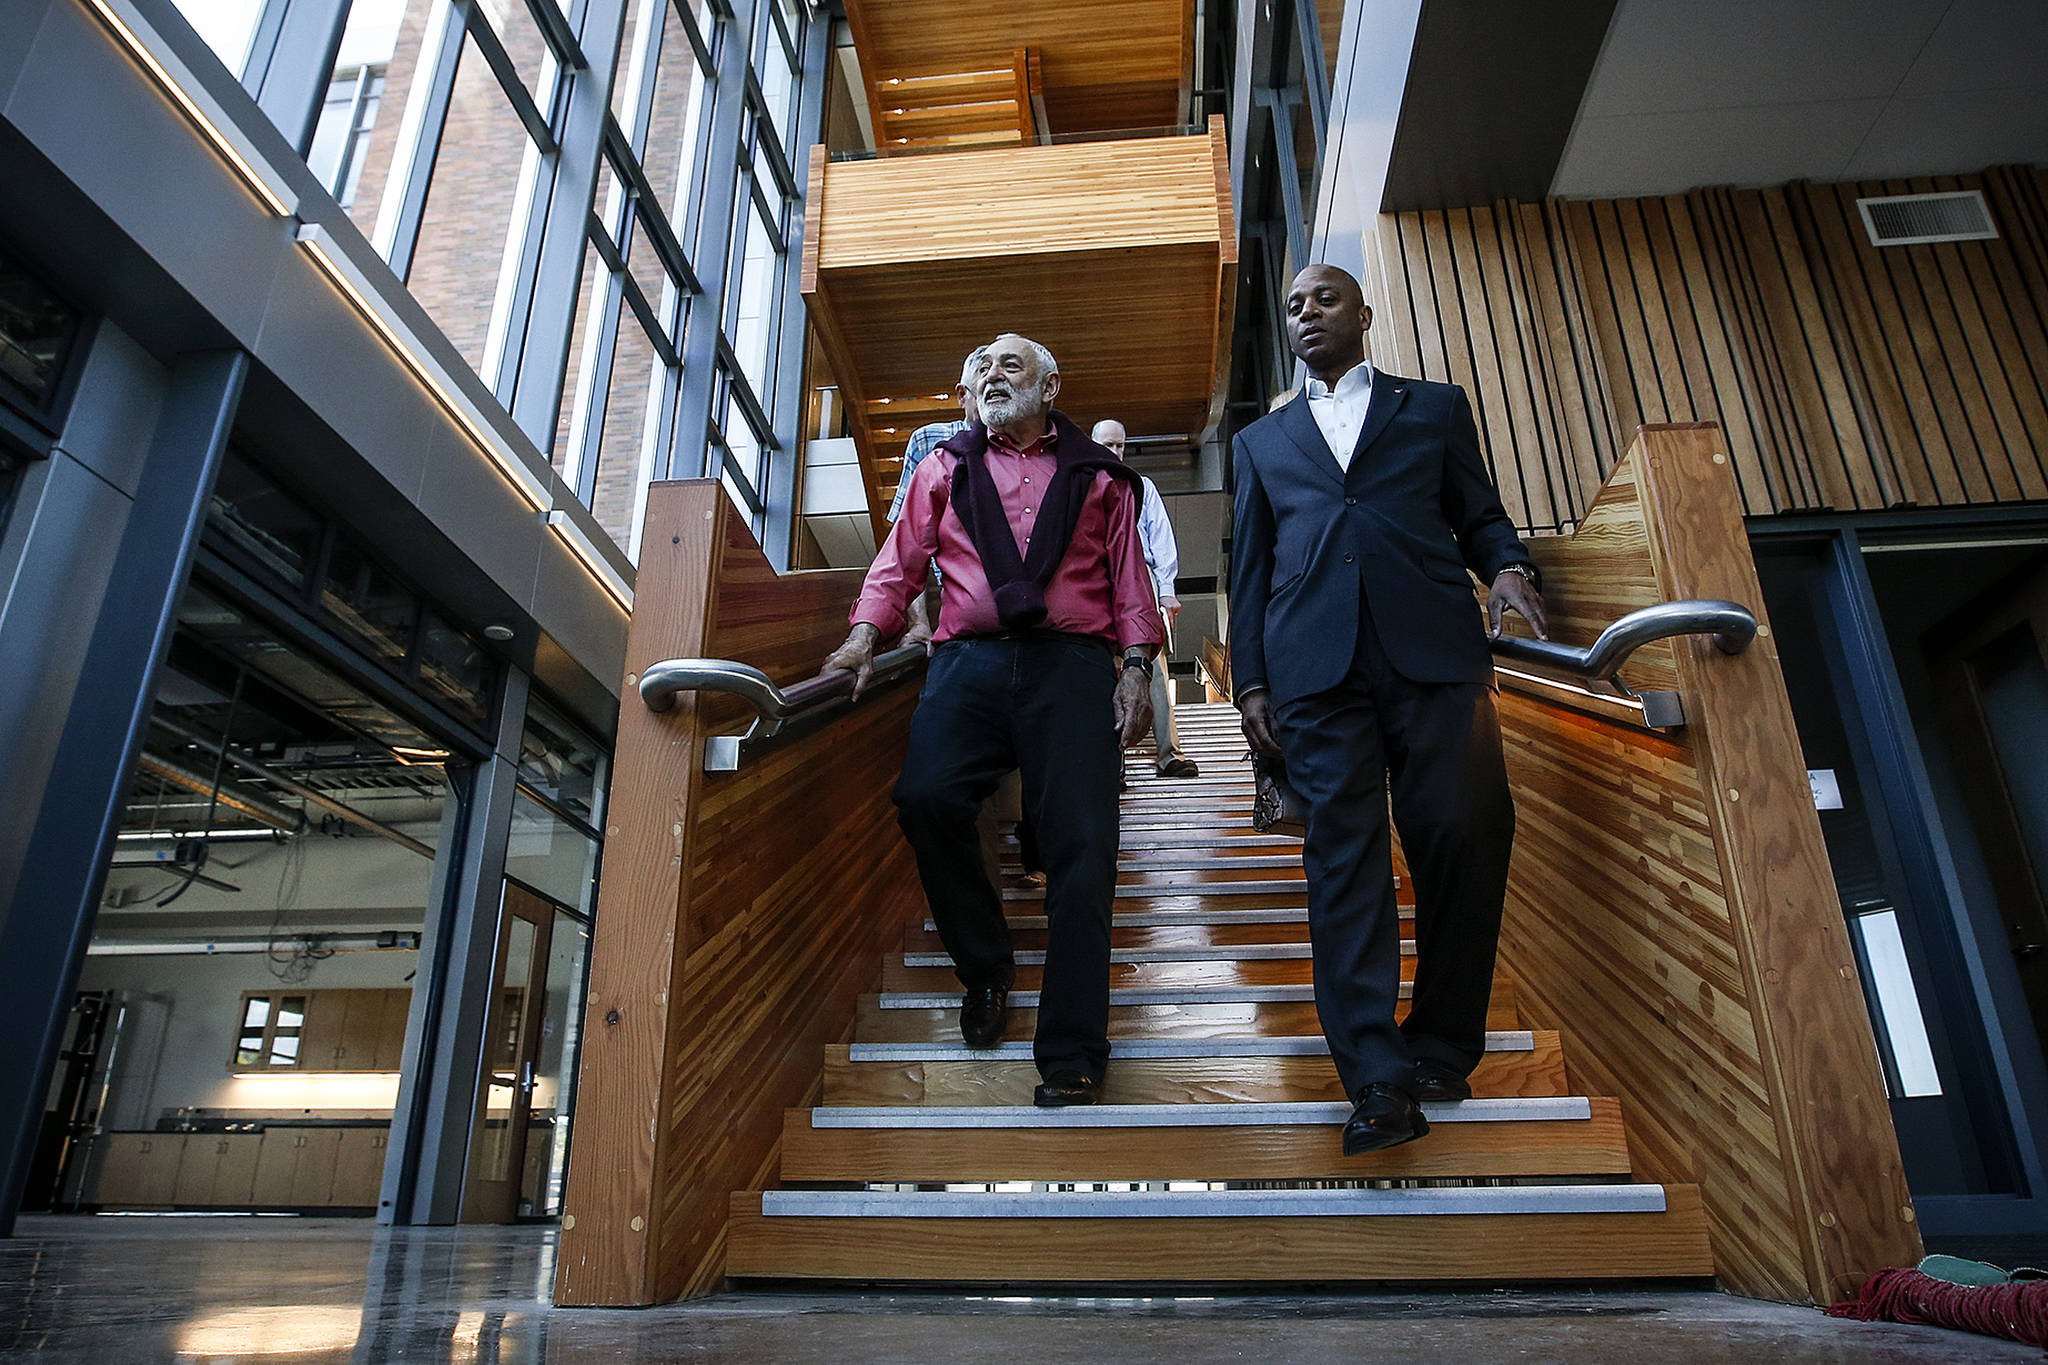 Dr. Larry Schecter (left), associate dean for WSU North Puget Sound's medical education programs, walks down the central staircase with Chancellor Paul Pitre at Washington State University Everett. The campus, which opened in 2017, will attract youth and talent to Everett and Snohomish County. (Ian Terry / The Herald)